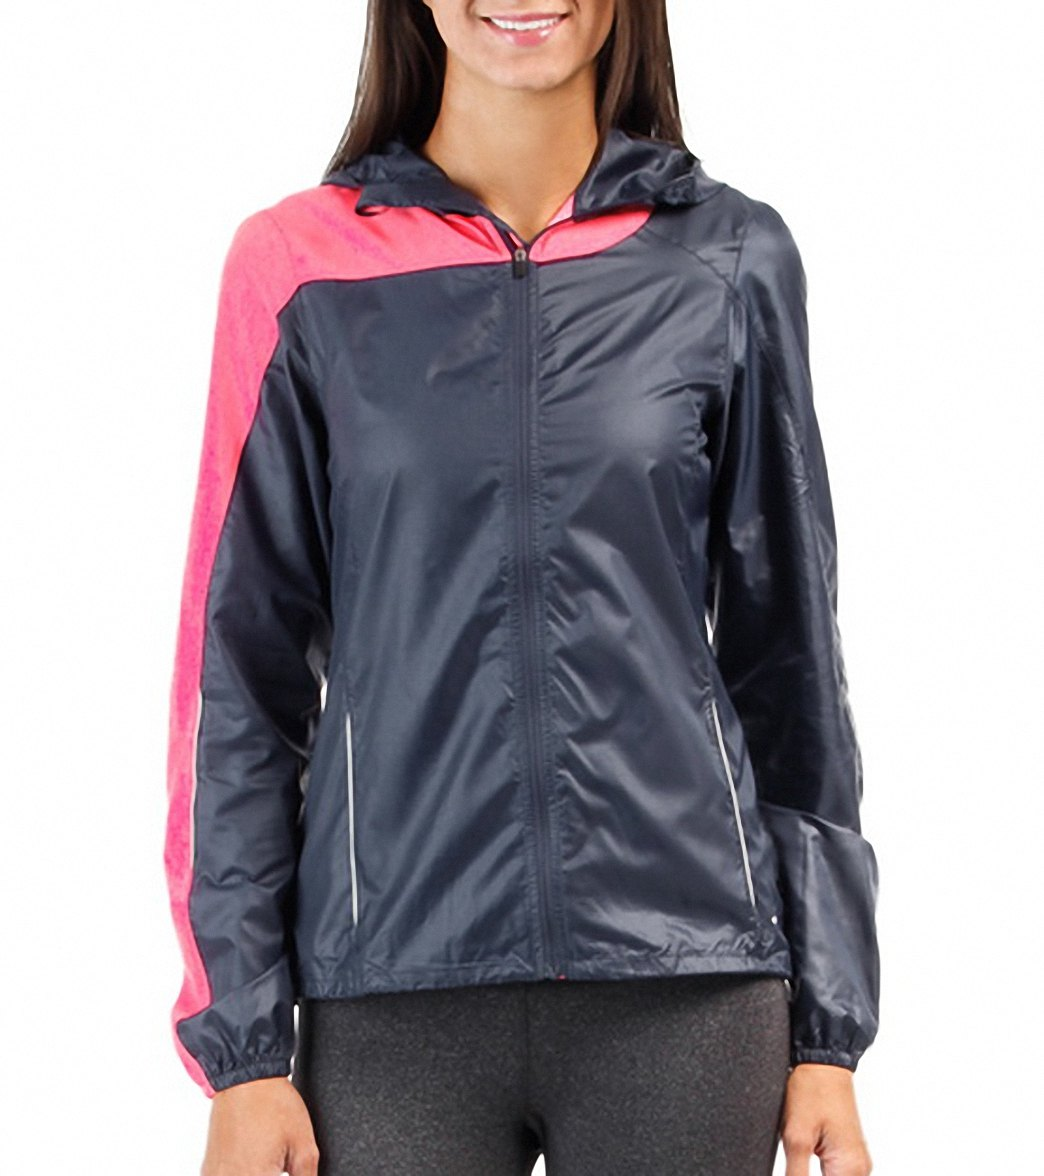 cdfd474053fc Brooks Women s LSD Lite Running Jacket III at SwimOutlet.com - Free Shipping